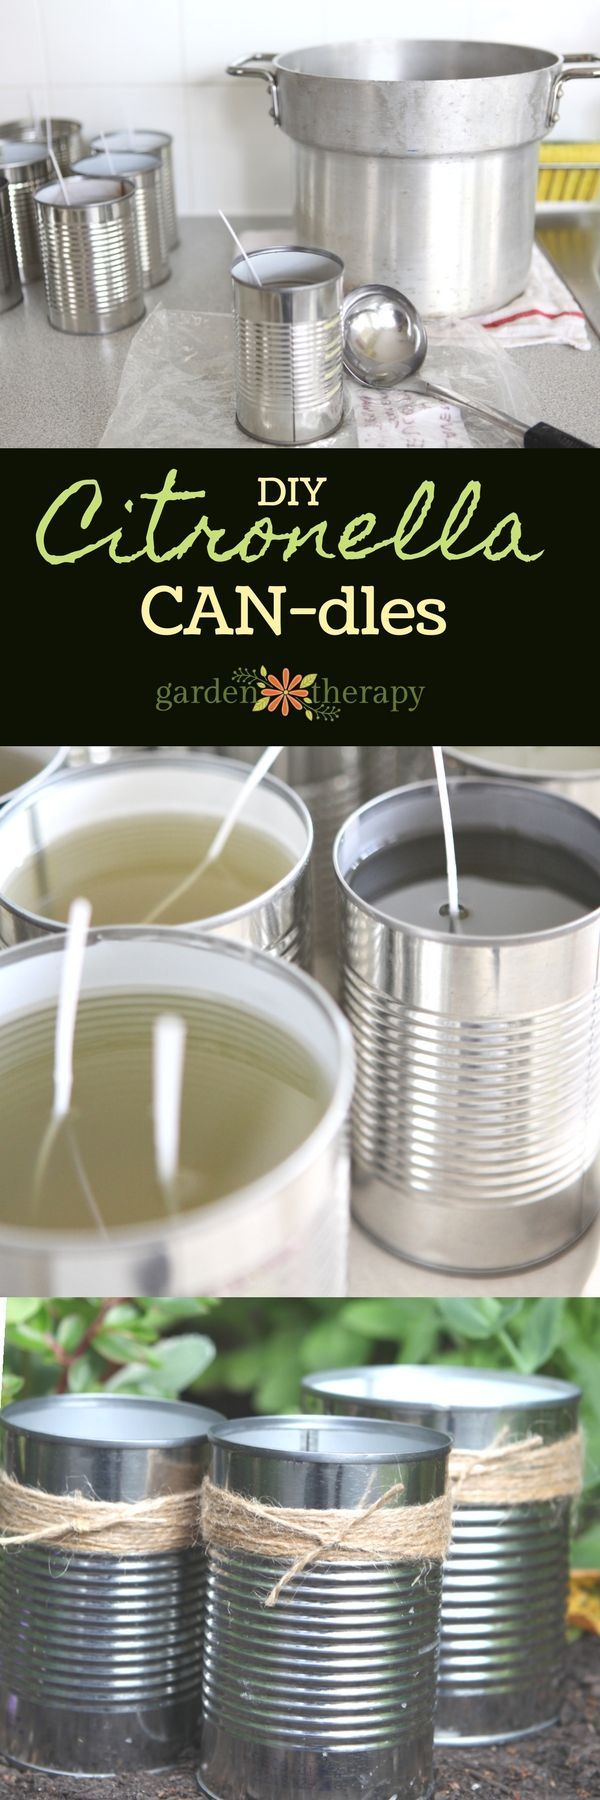 How to Make Citronella Candles... We always buy them for camping, so why not make them?? #camping #DIY #outdoors #candlemakingdiy